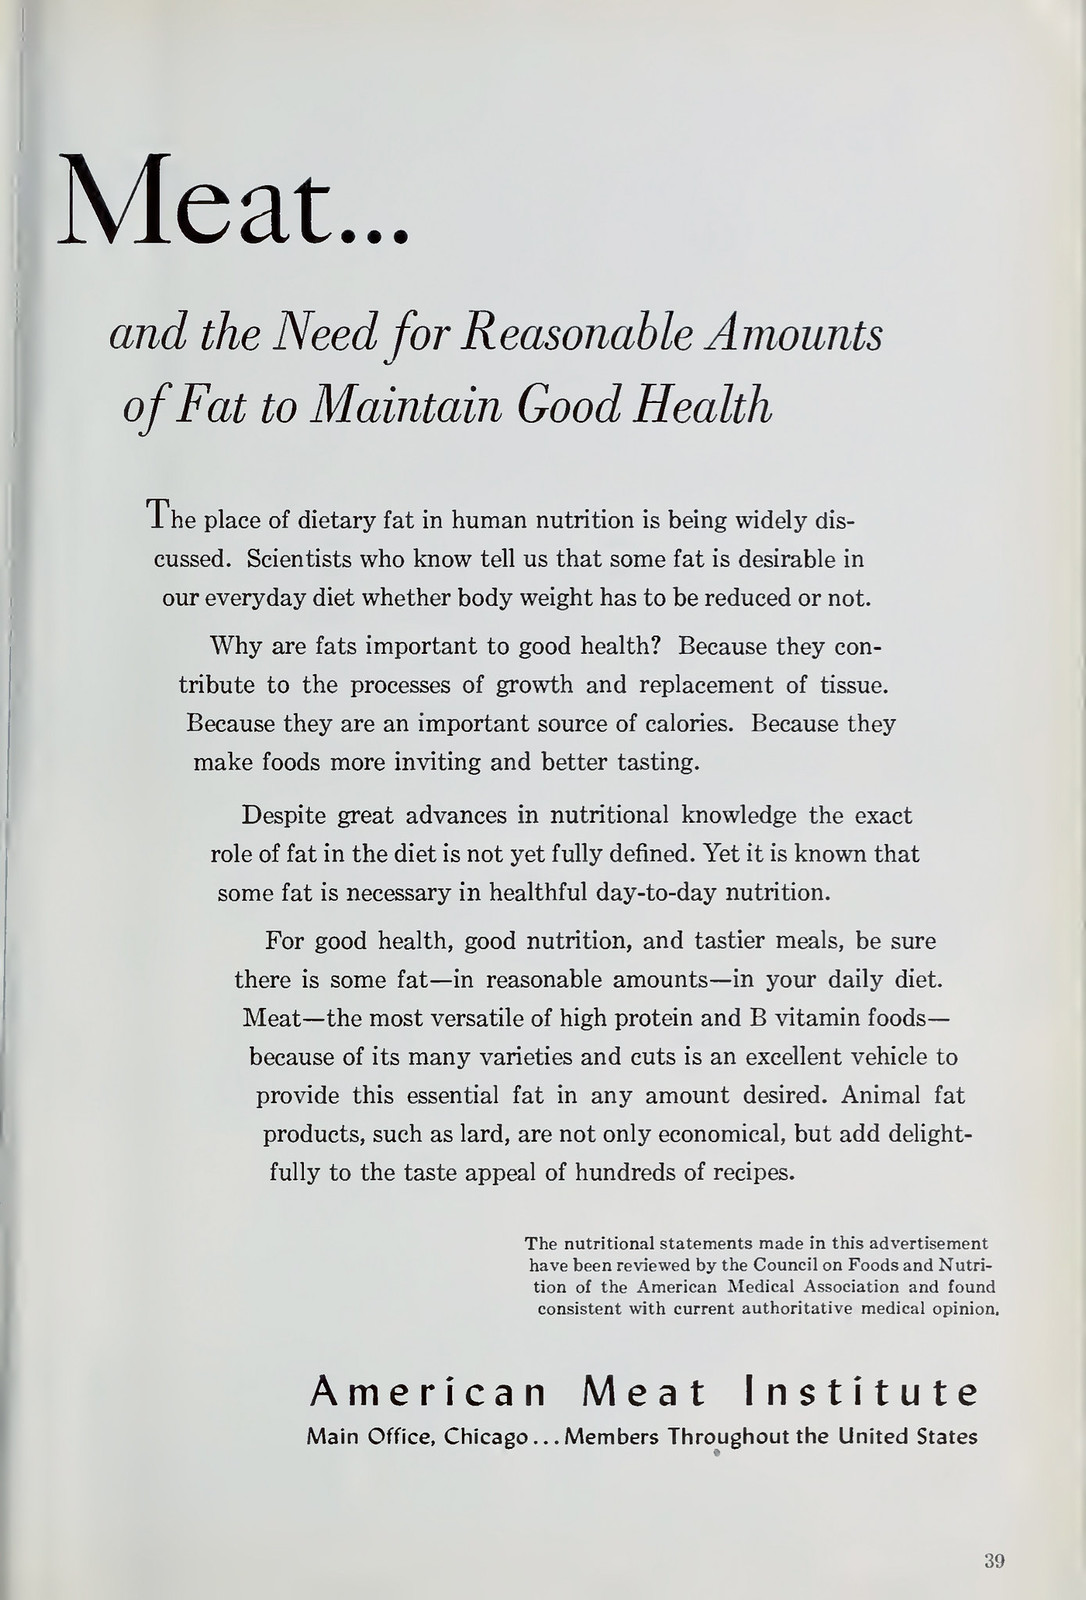 2018.02.11 Pharmaceutical Ads, New York State Journal of Medicine, 1957 281